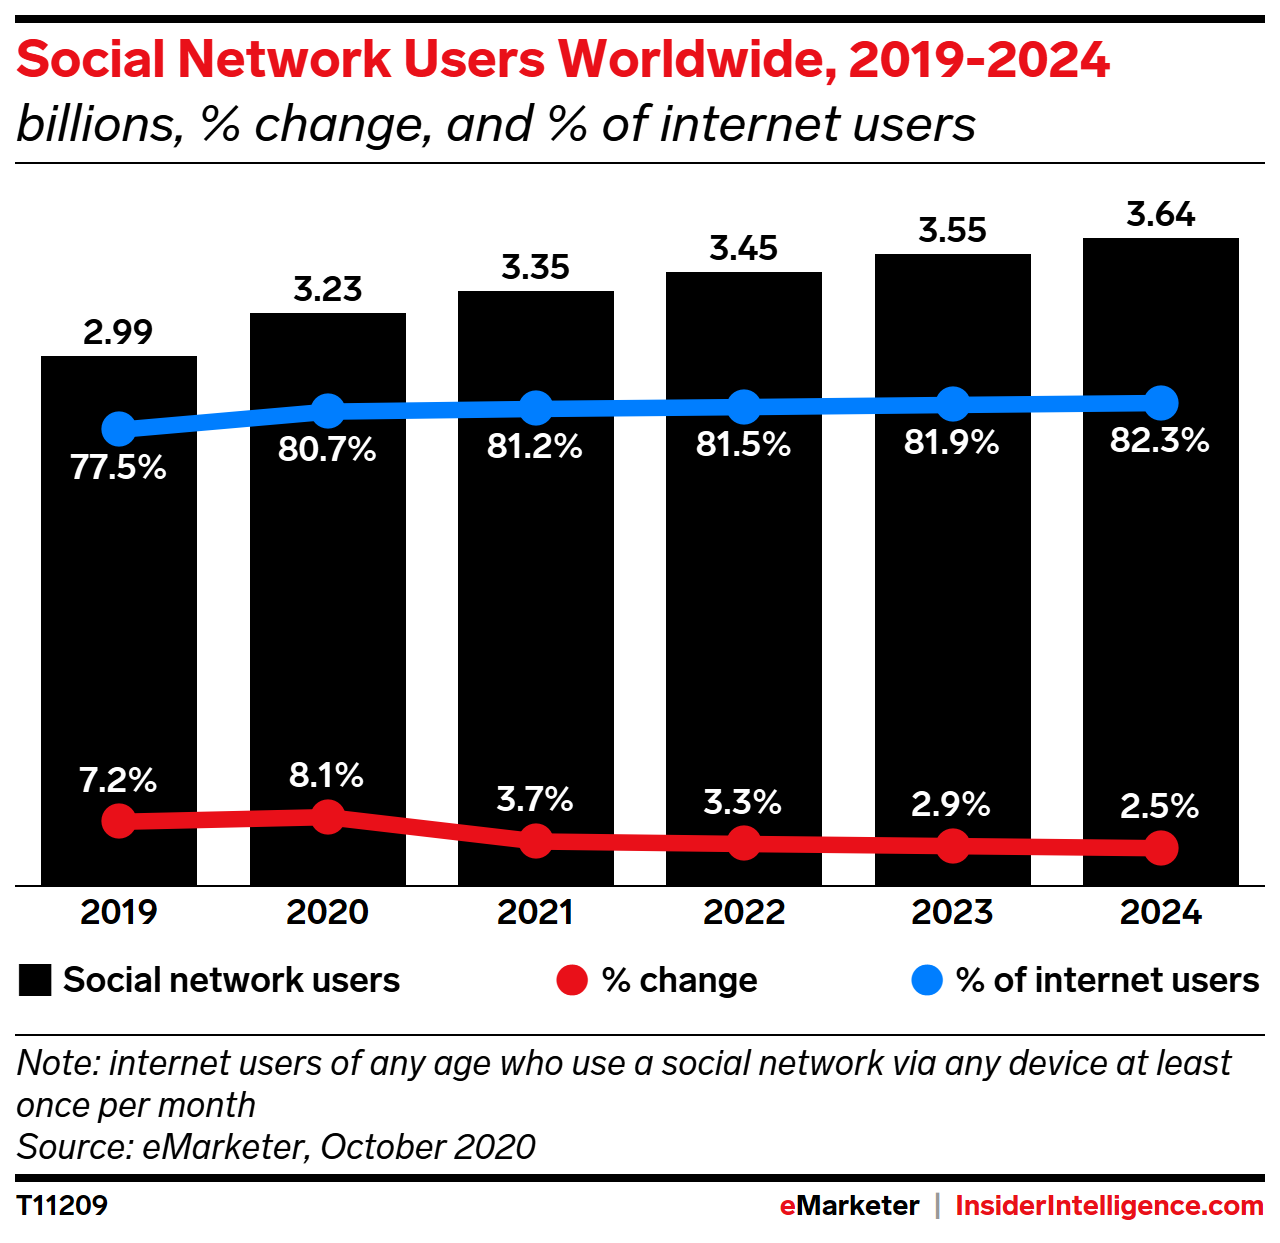 Social Network Users Worldwide, 2019-2024 (billions, % change, and % of internet users)